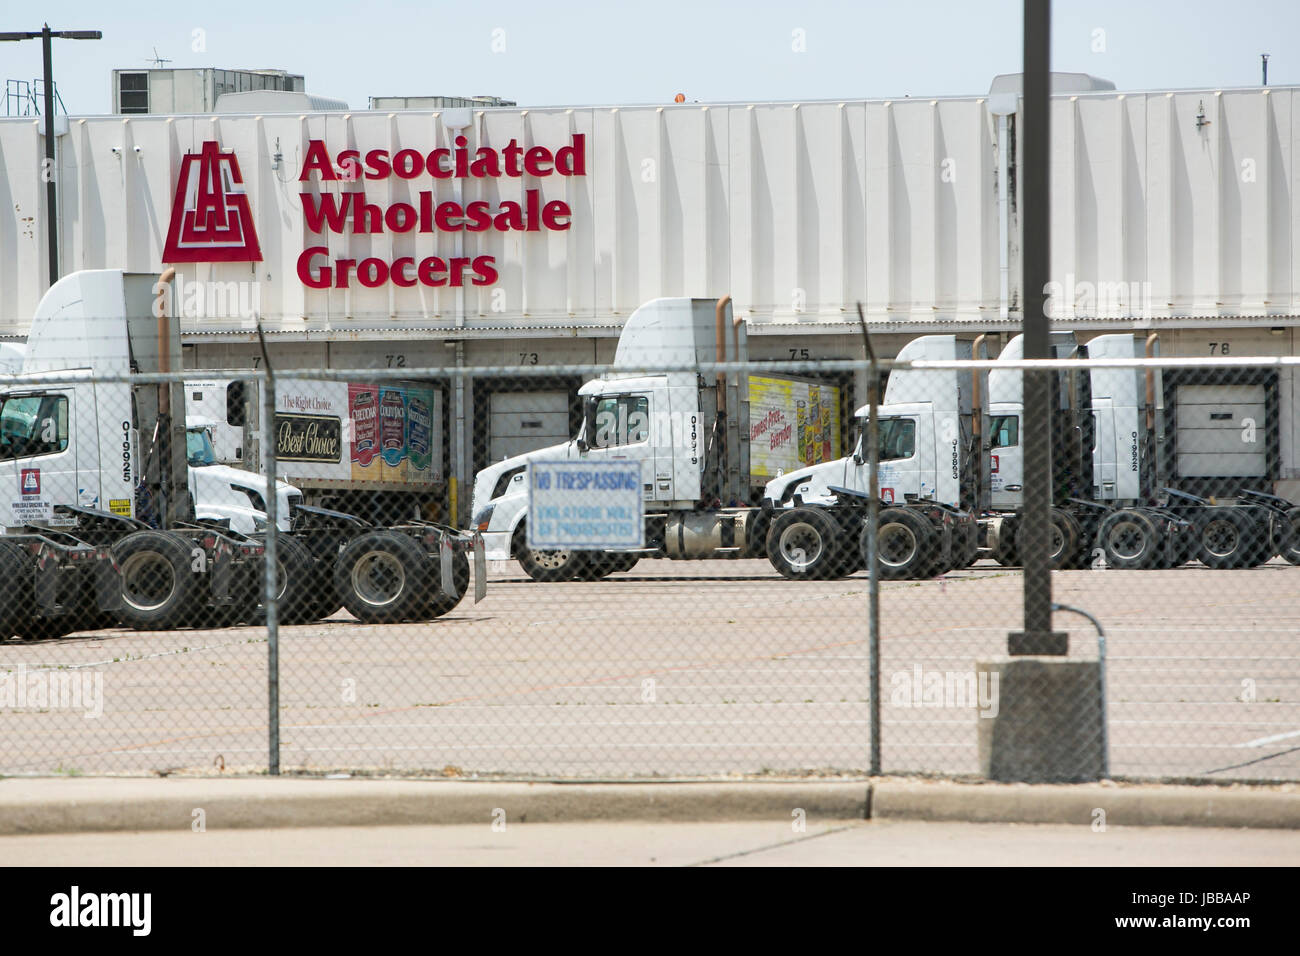 A logo sign outside of a facility occupied by Associated Wholesale Grocers, Inc., in Fort Worth, Texas, on May 29, - Stock Image